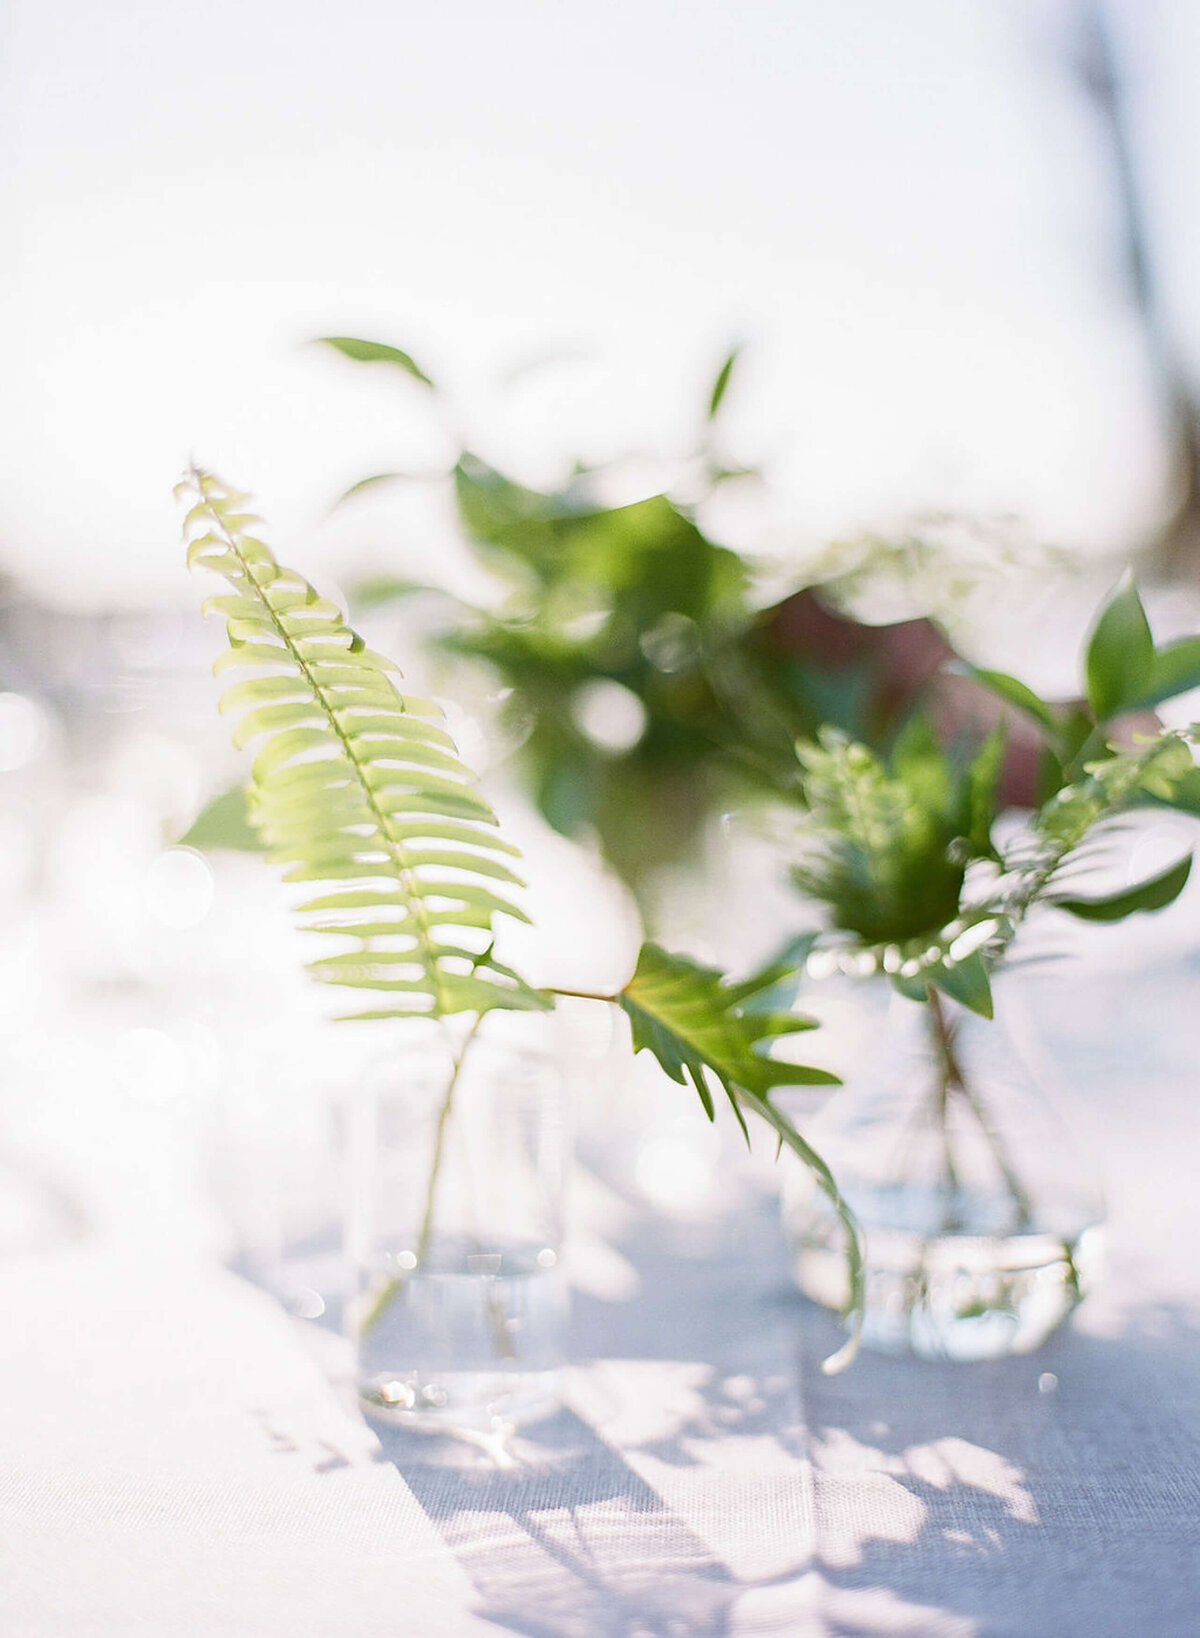 maui-hawaii-wedding-clay-austin-photography-12